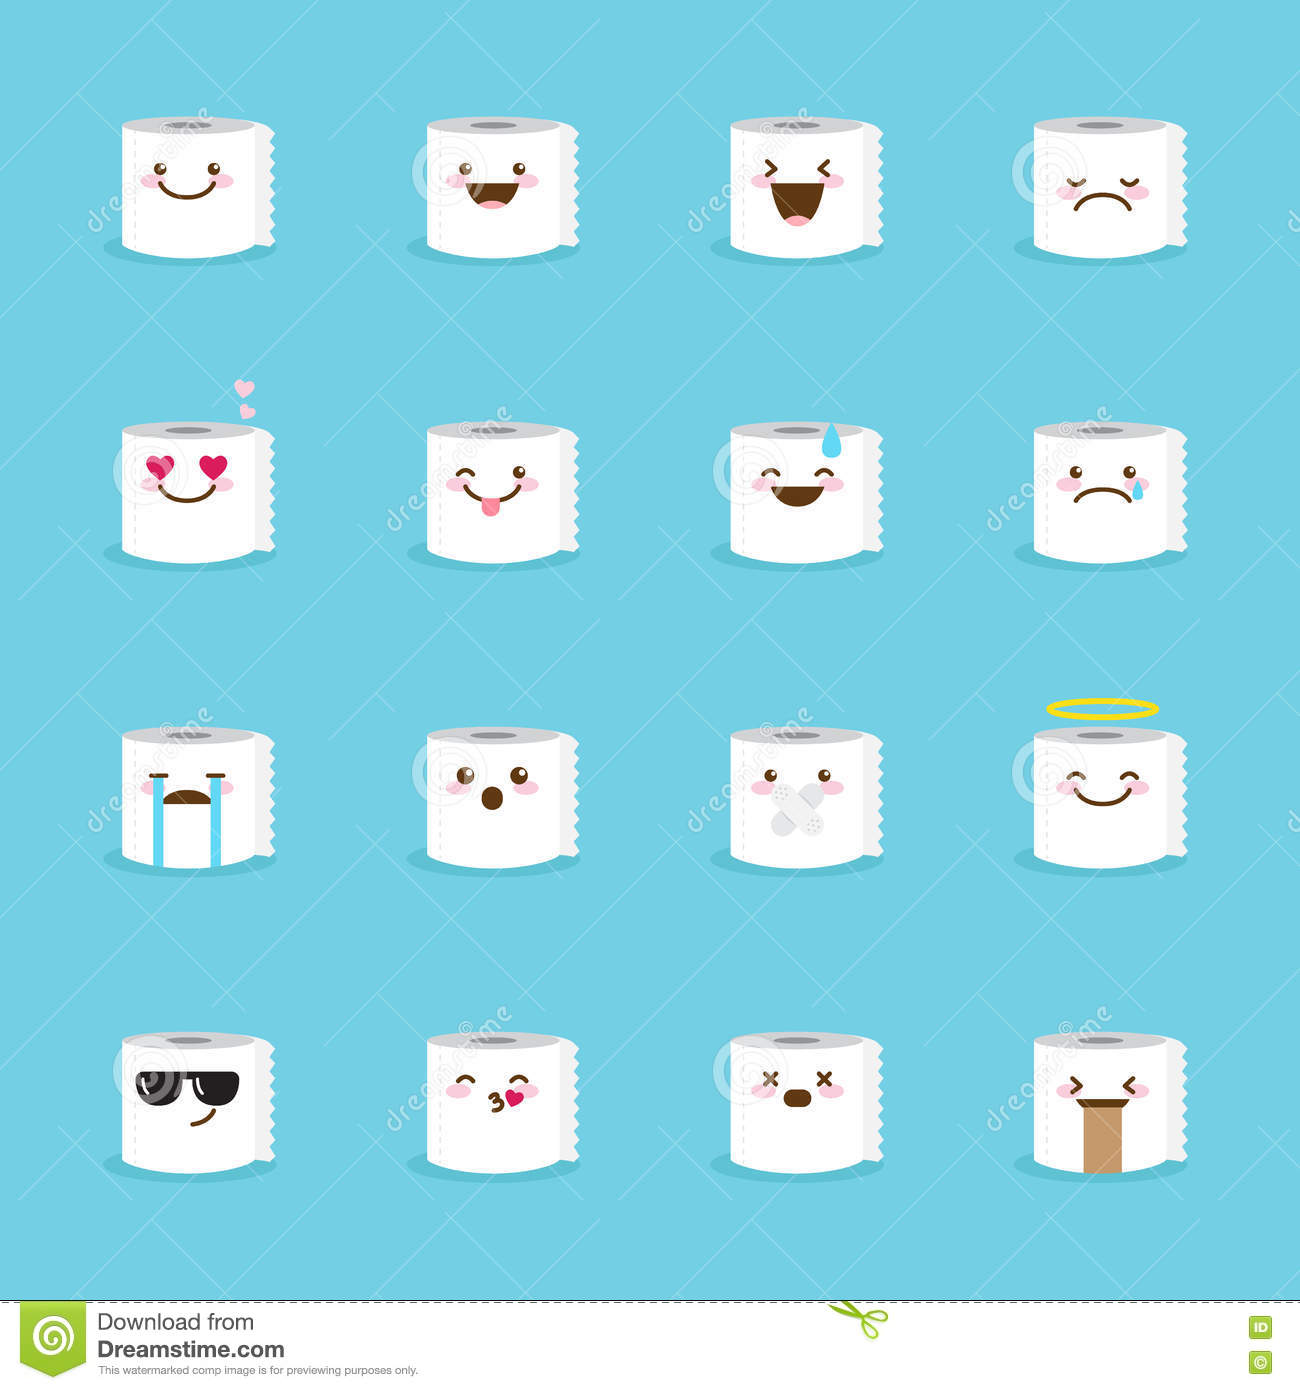 Popular Toilet Paper Emoji Gallery